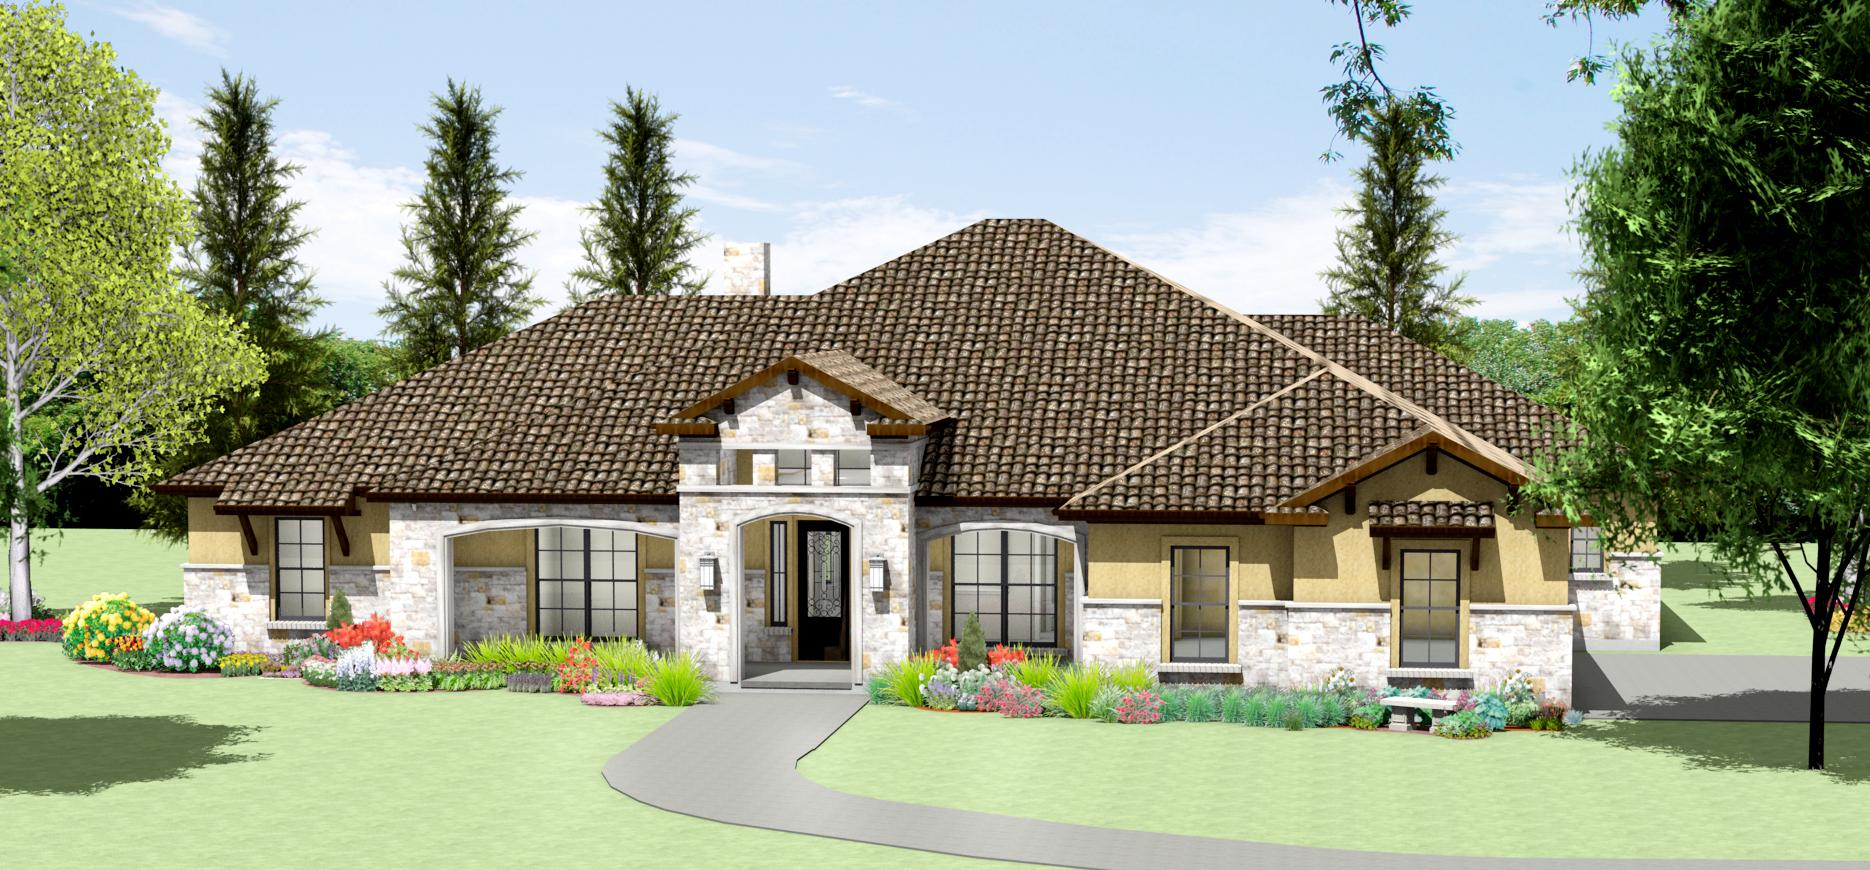 Texas hill country limestone house plans for Texas home builders floor plans